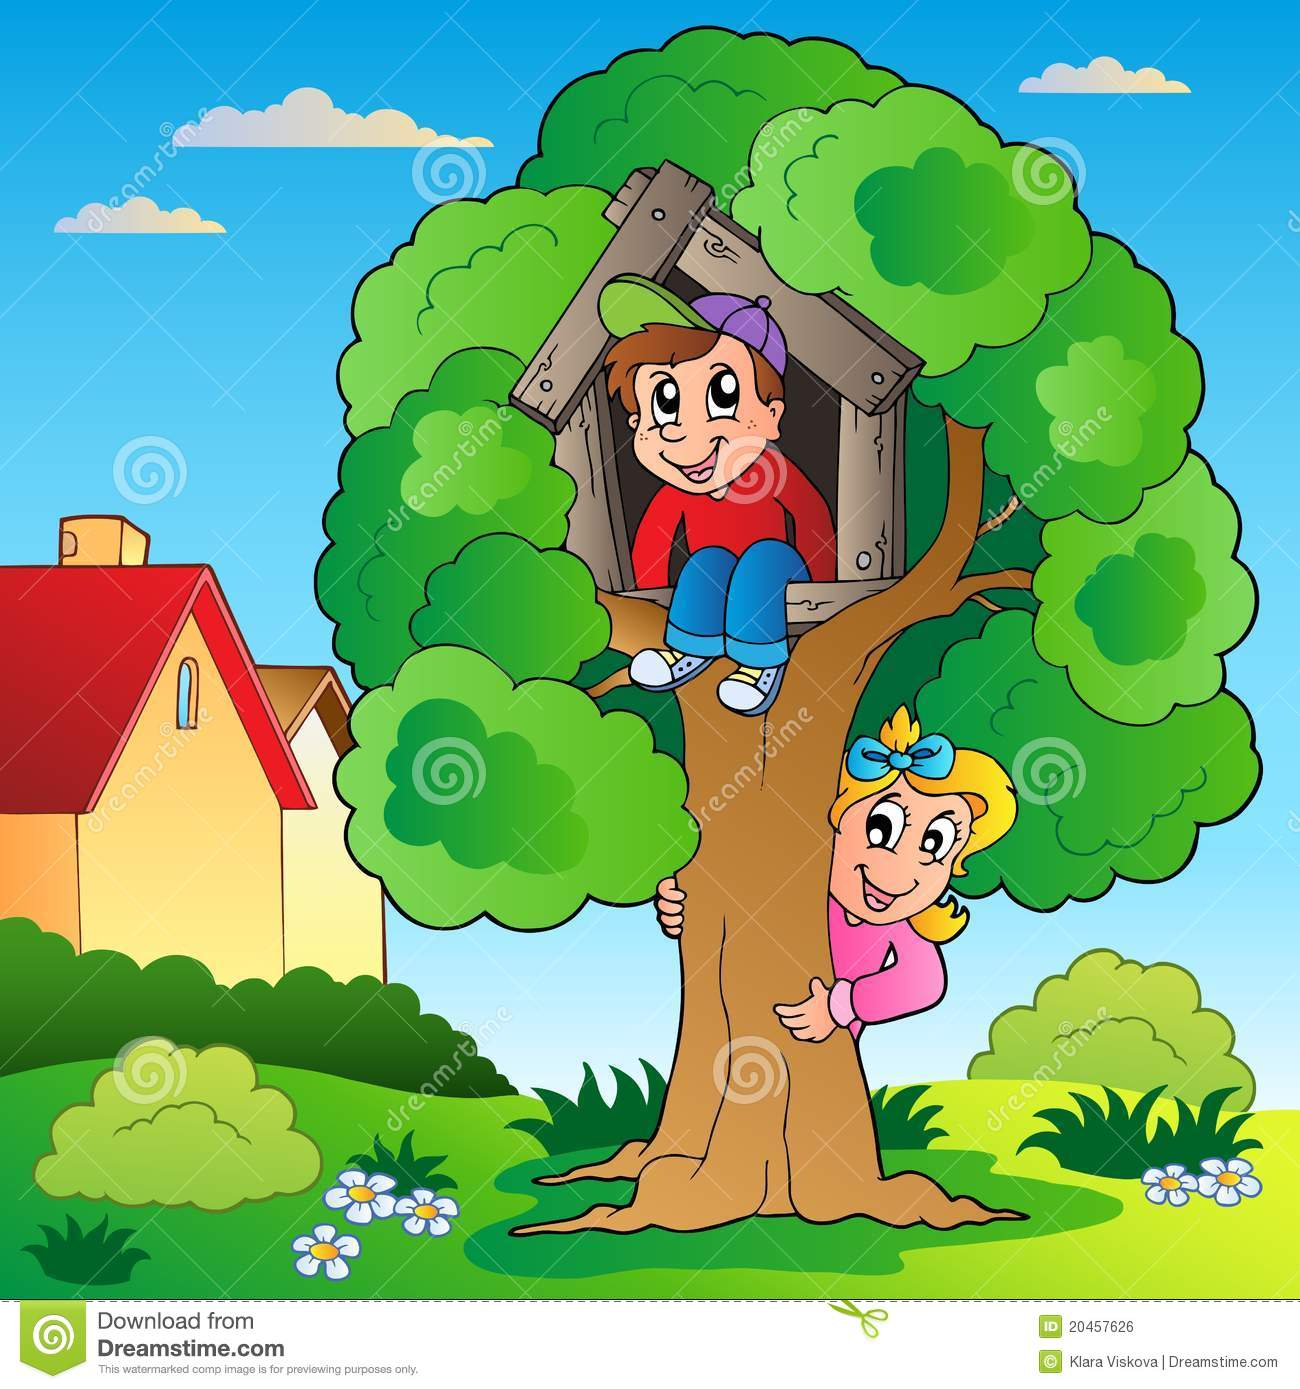 Garden With Two Kids And Tree Stock Vector - Illustration ...